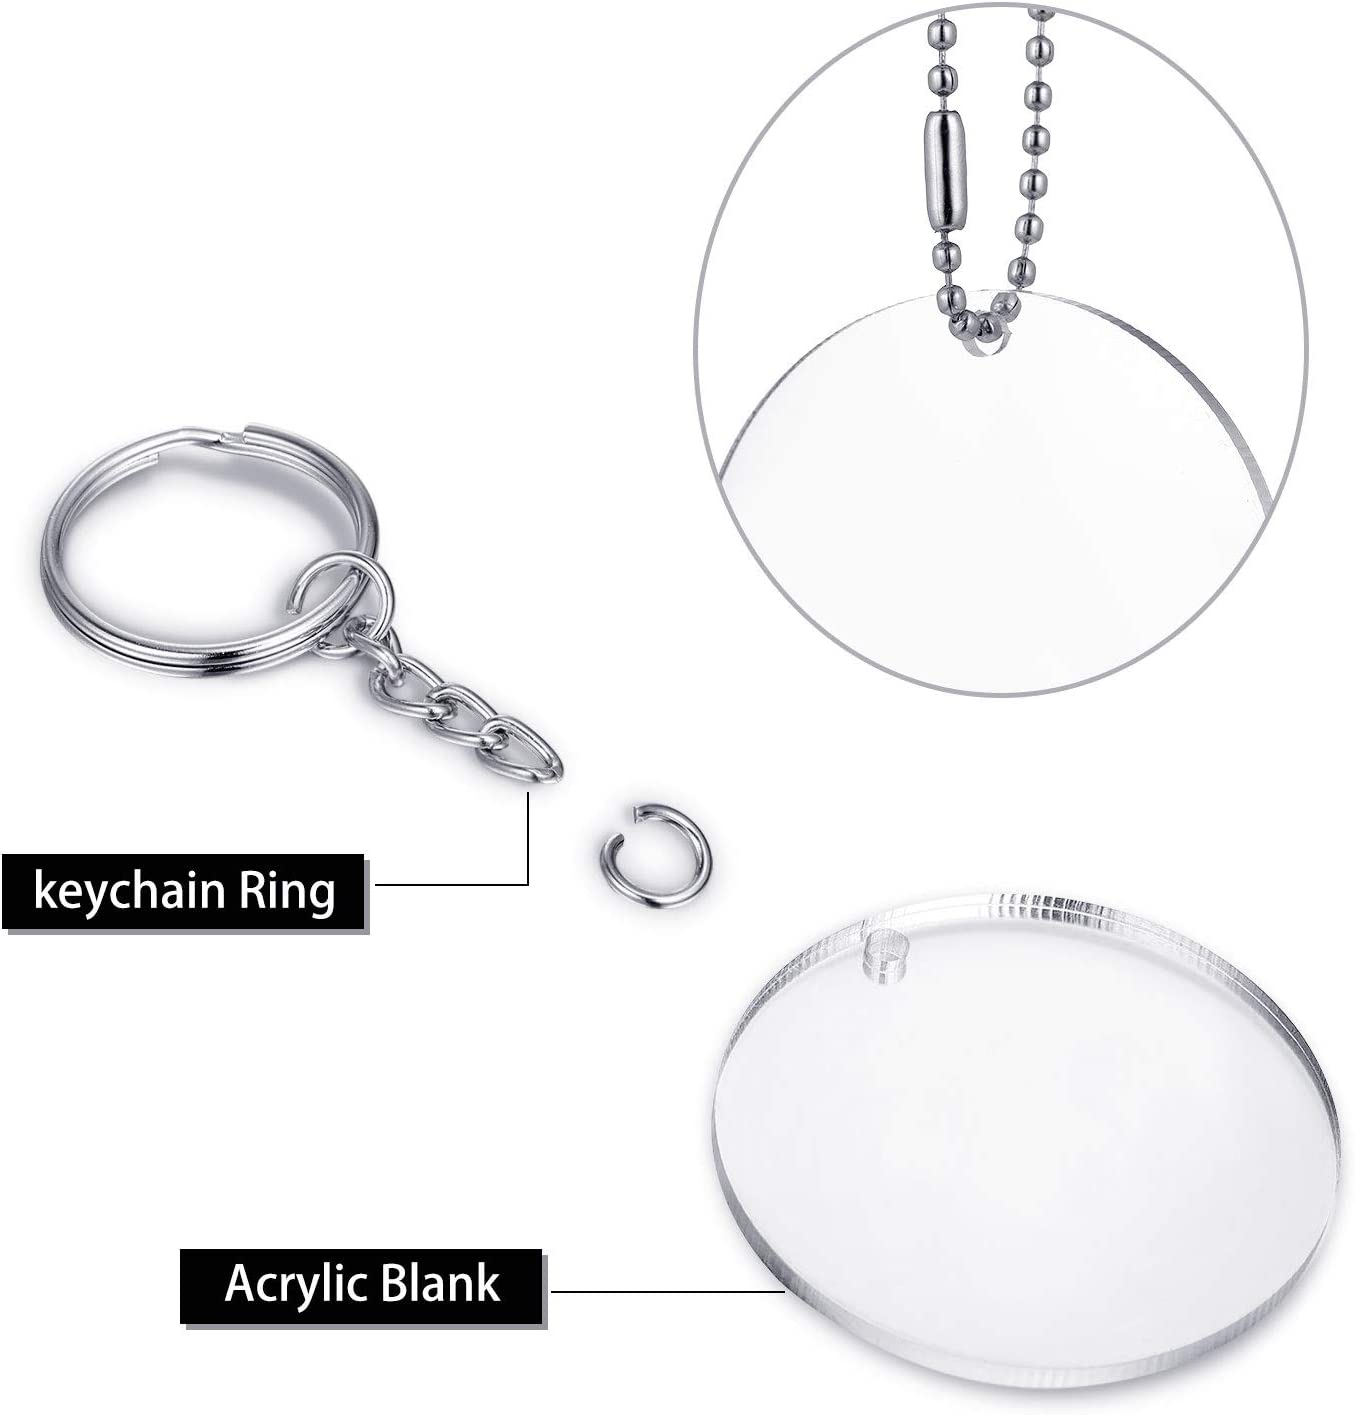 144 Pieces Keychain Tassels Set Transparent Acrylic Circle Discs Jump Rings Keychain Hooks Tassels Pendants for DIY Keyrings Projects and Crafts/